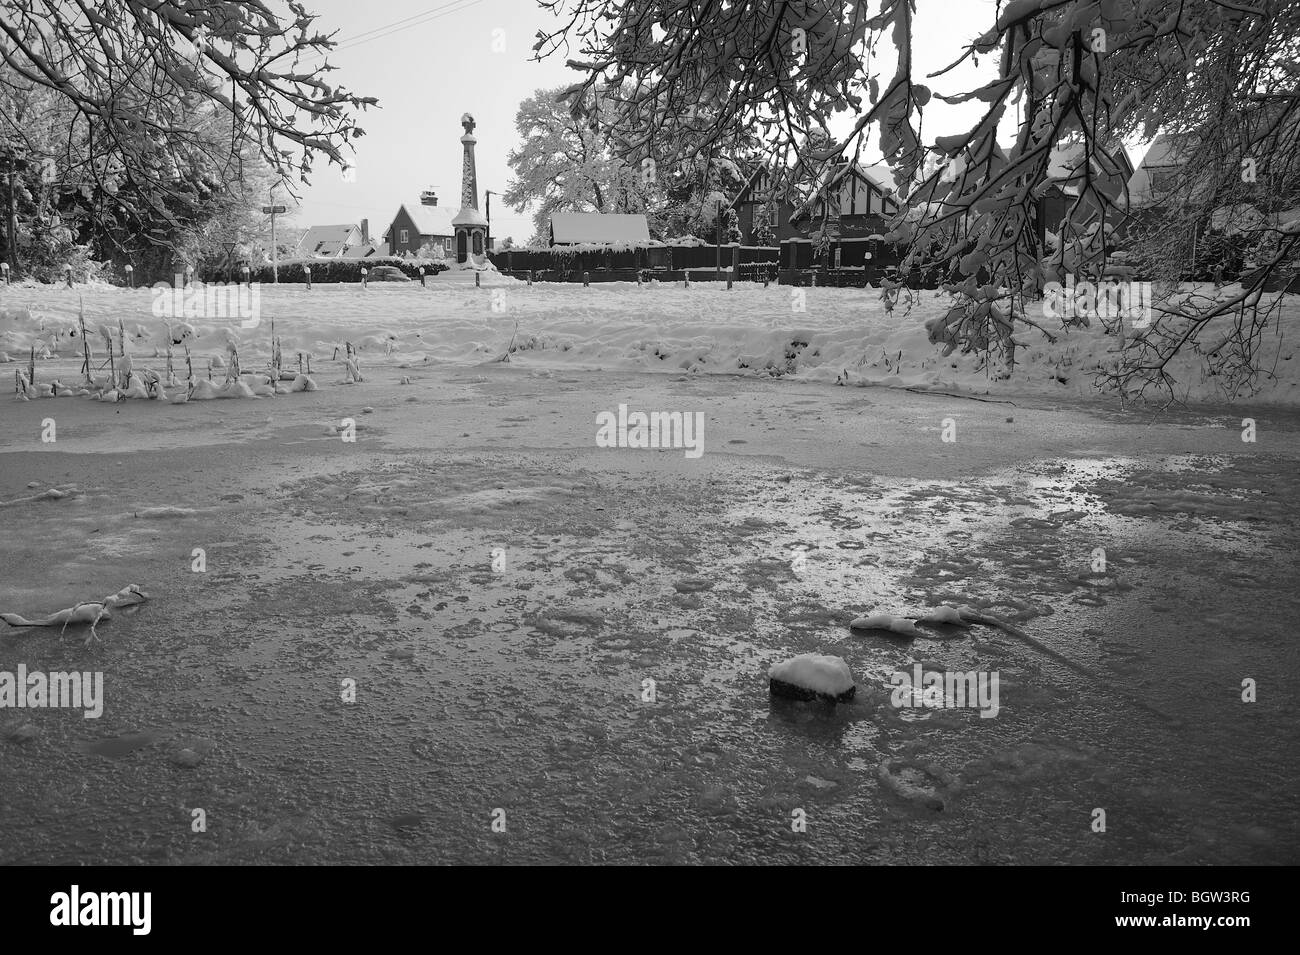 Winter landscape in black and white, Mortimer, Berkshire, UK - Stock Image